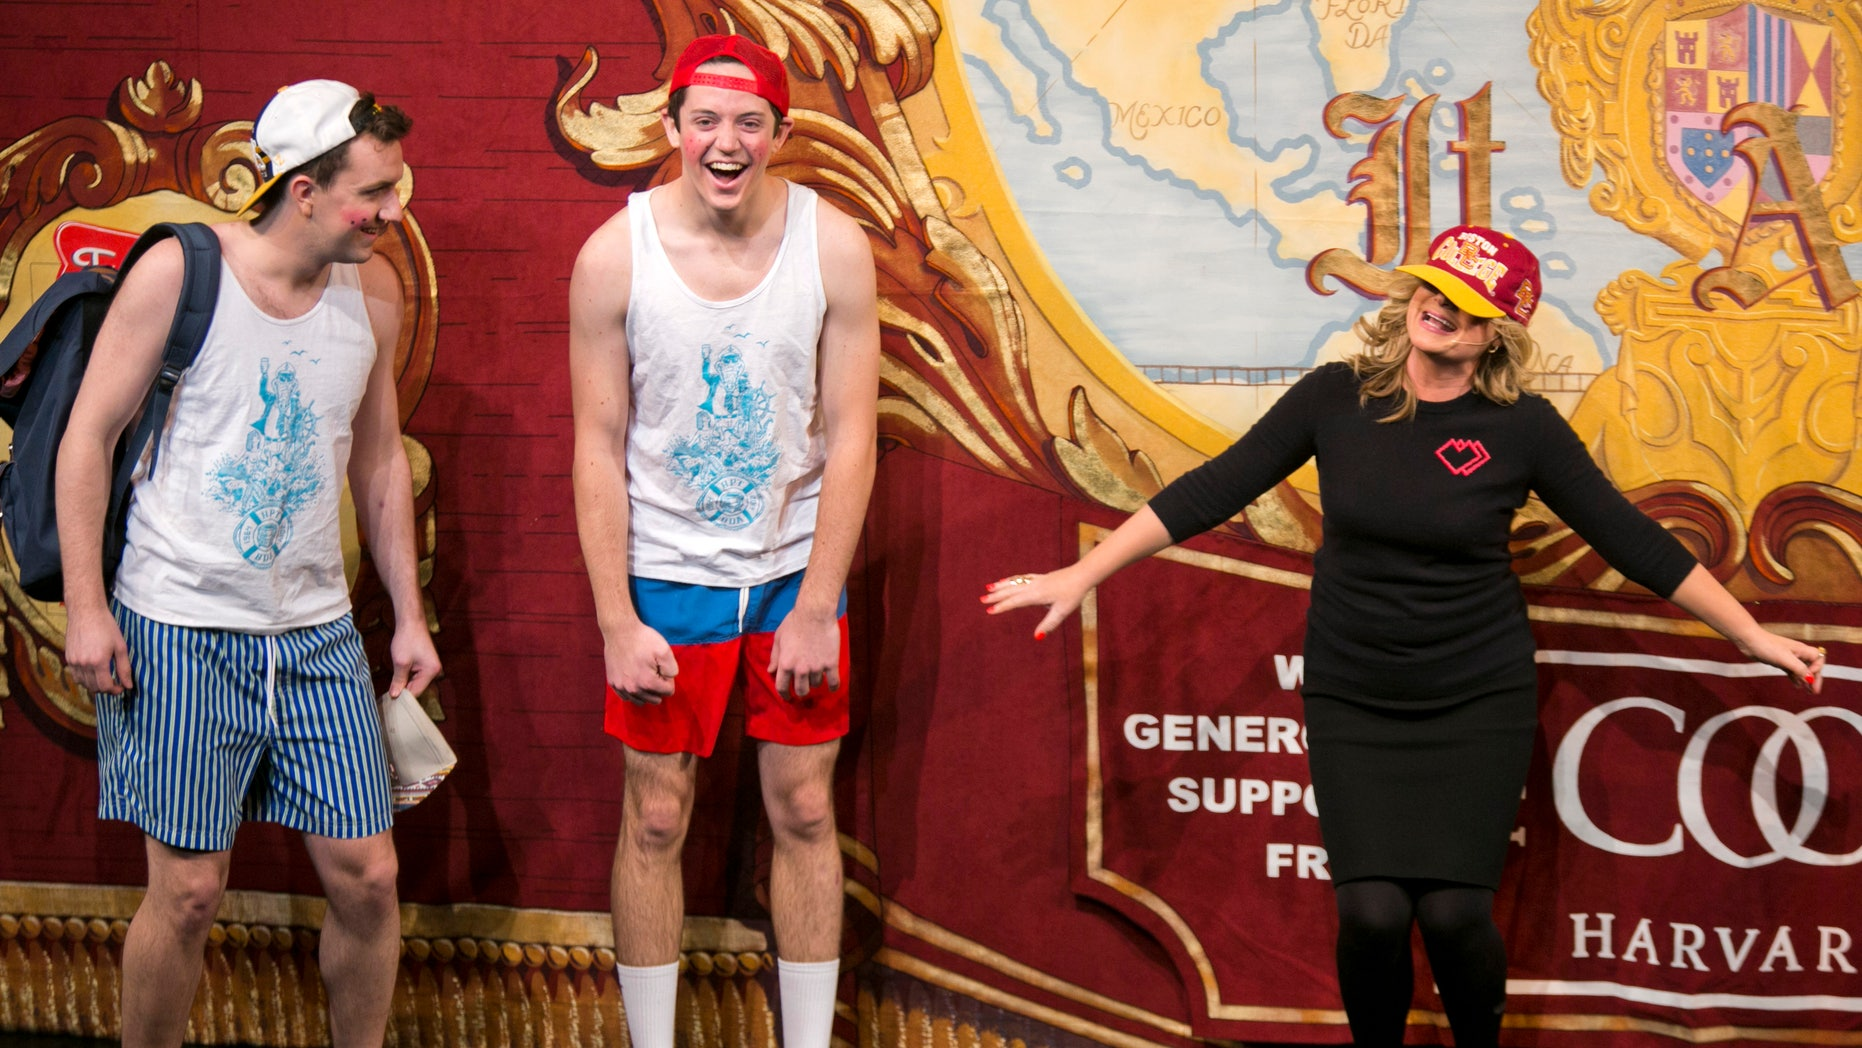 """Actress and comedian Amy Poehler raps freestyle with characters from her film """"Wet Hot American Summer"""" as she is honored with a roast as Hasty Pudding Theatricals Woman of the Year at Harvard University in Cambridge, Massachusetts January 29, 2015. REUTERS"""